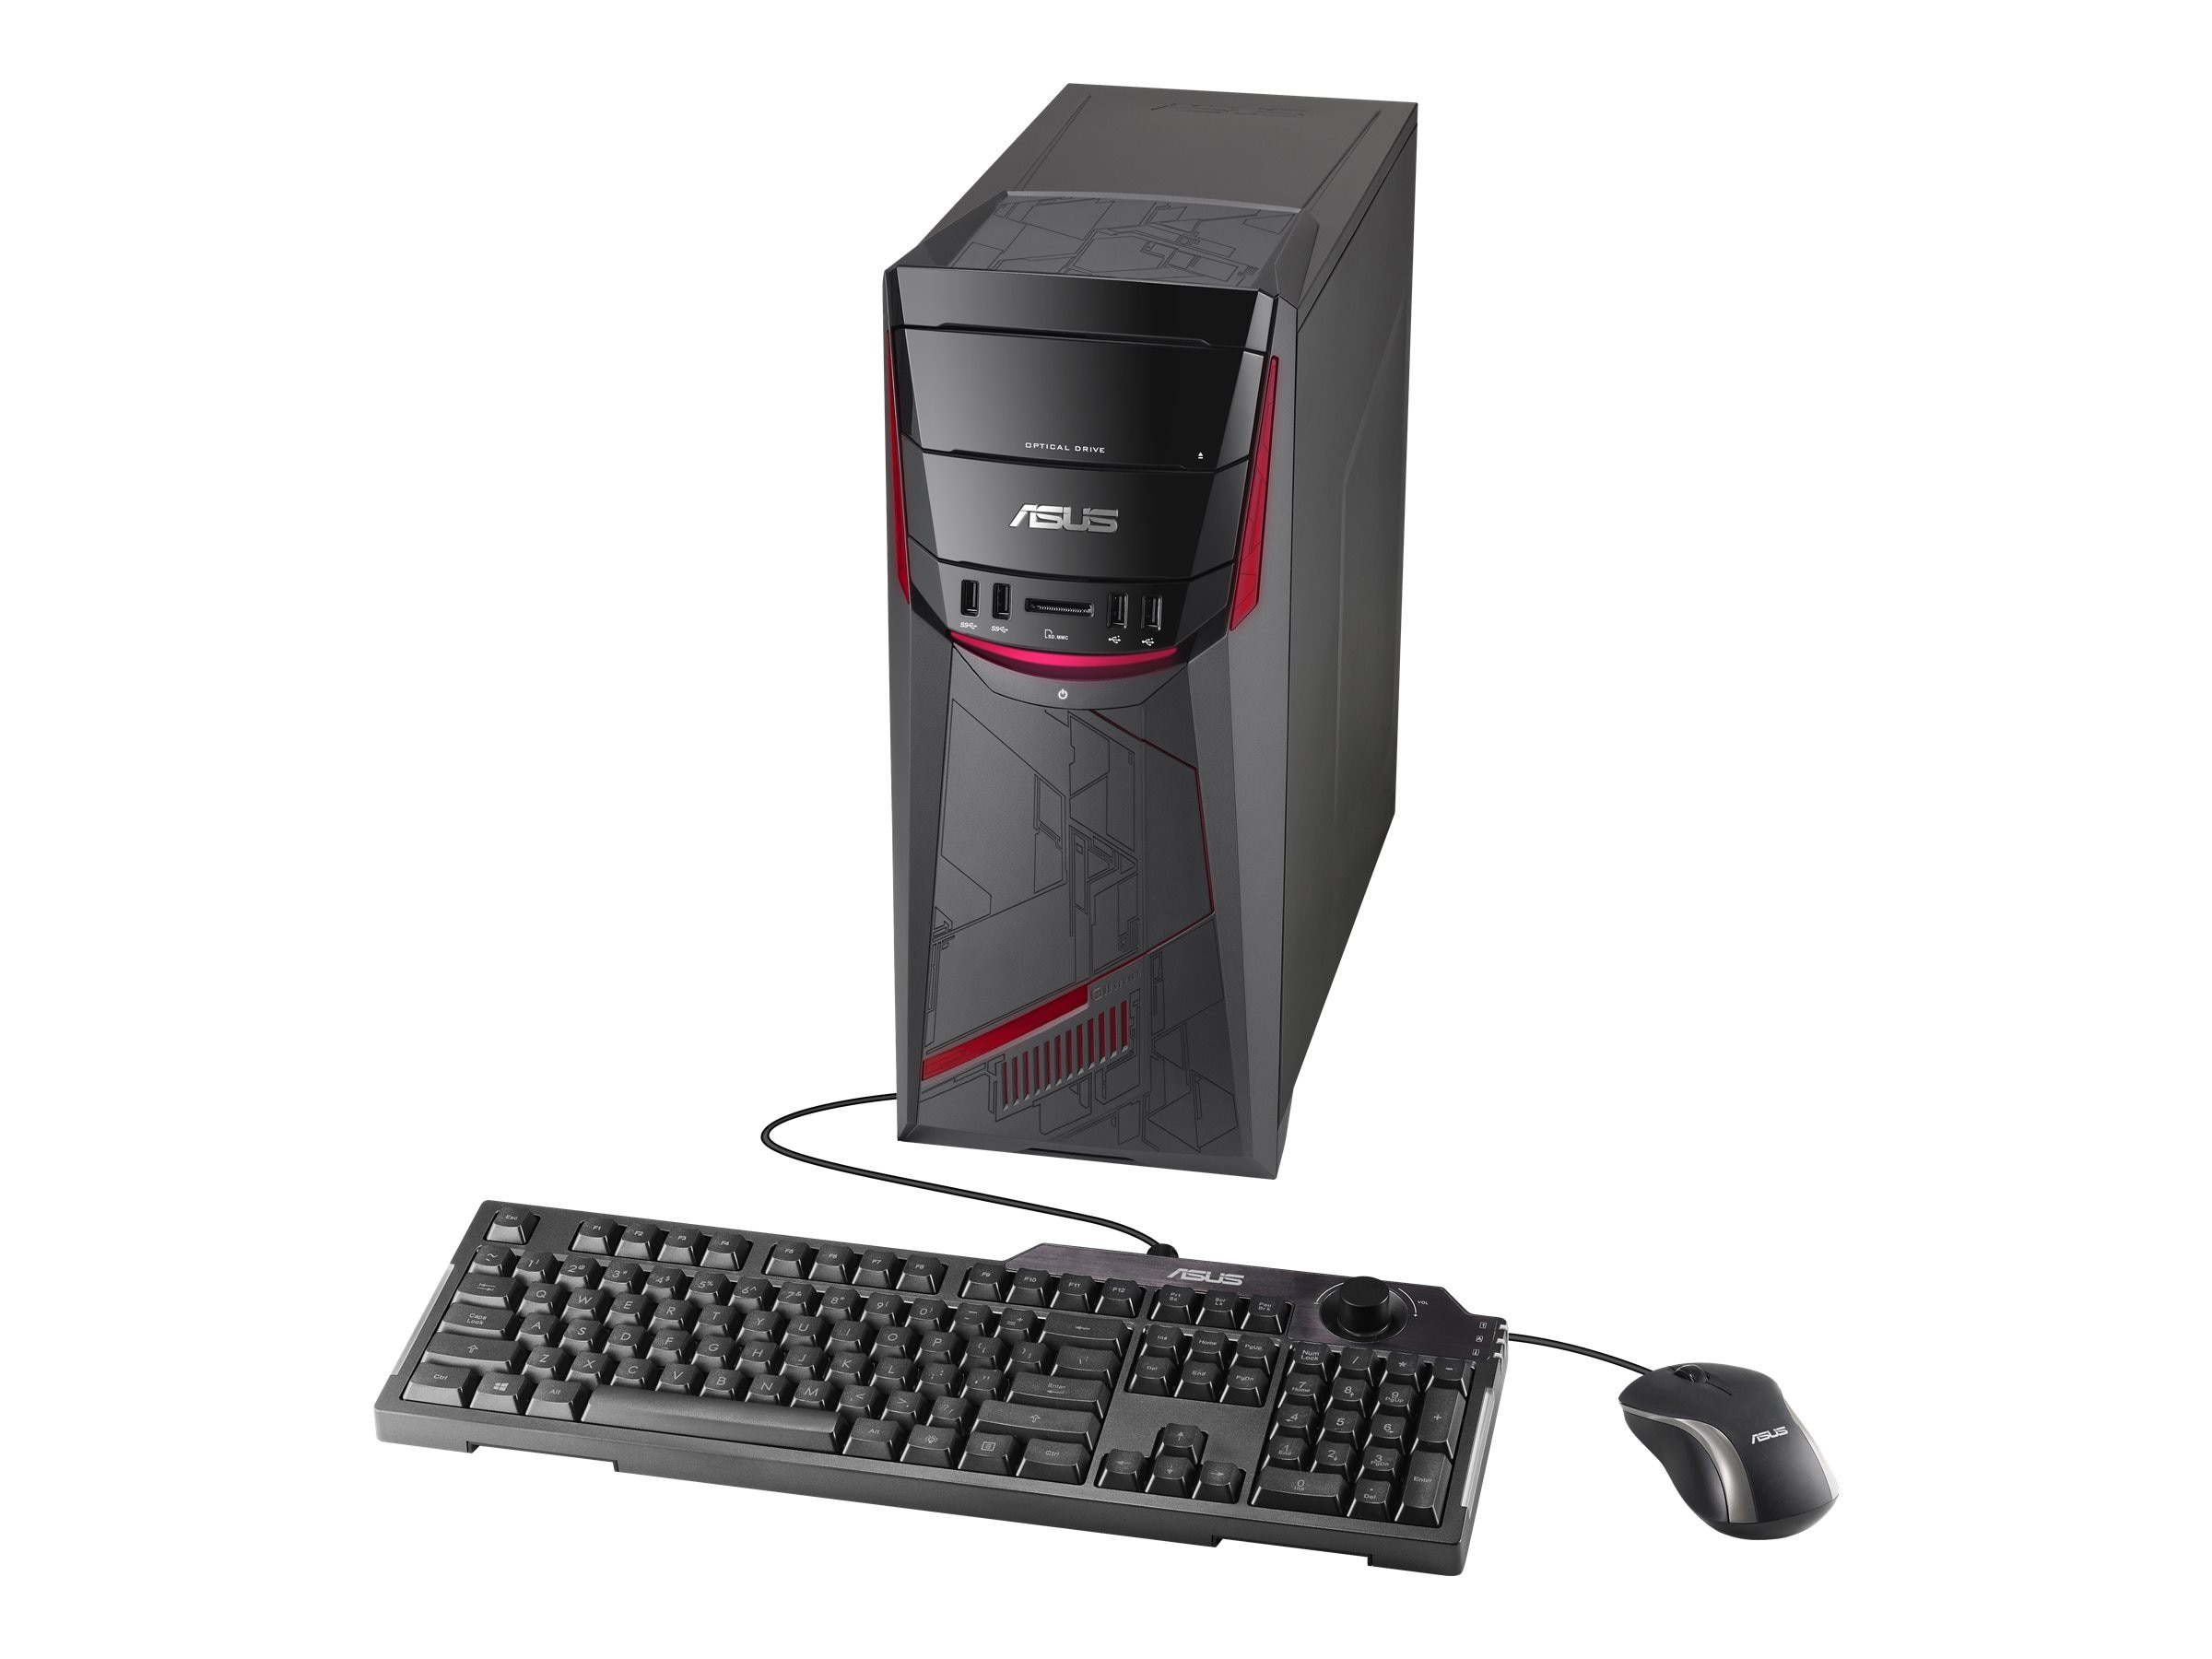 Asus G11CD-WS51 Desktop Core i5-6400 2.7GHz 8GB 1TB GTX970 DVD SM GbE ac BT W10HP64, G11CD-WS51